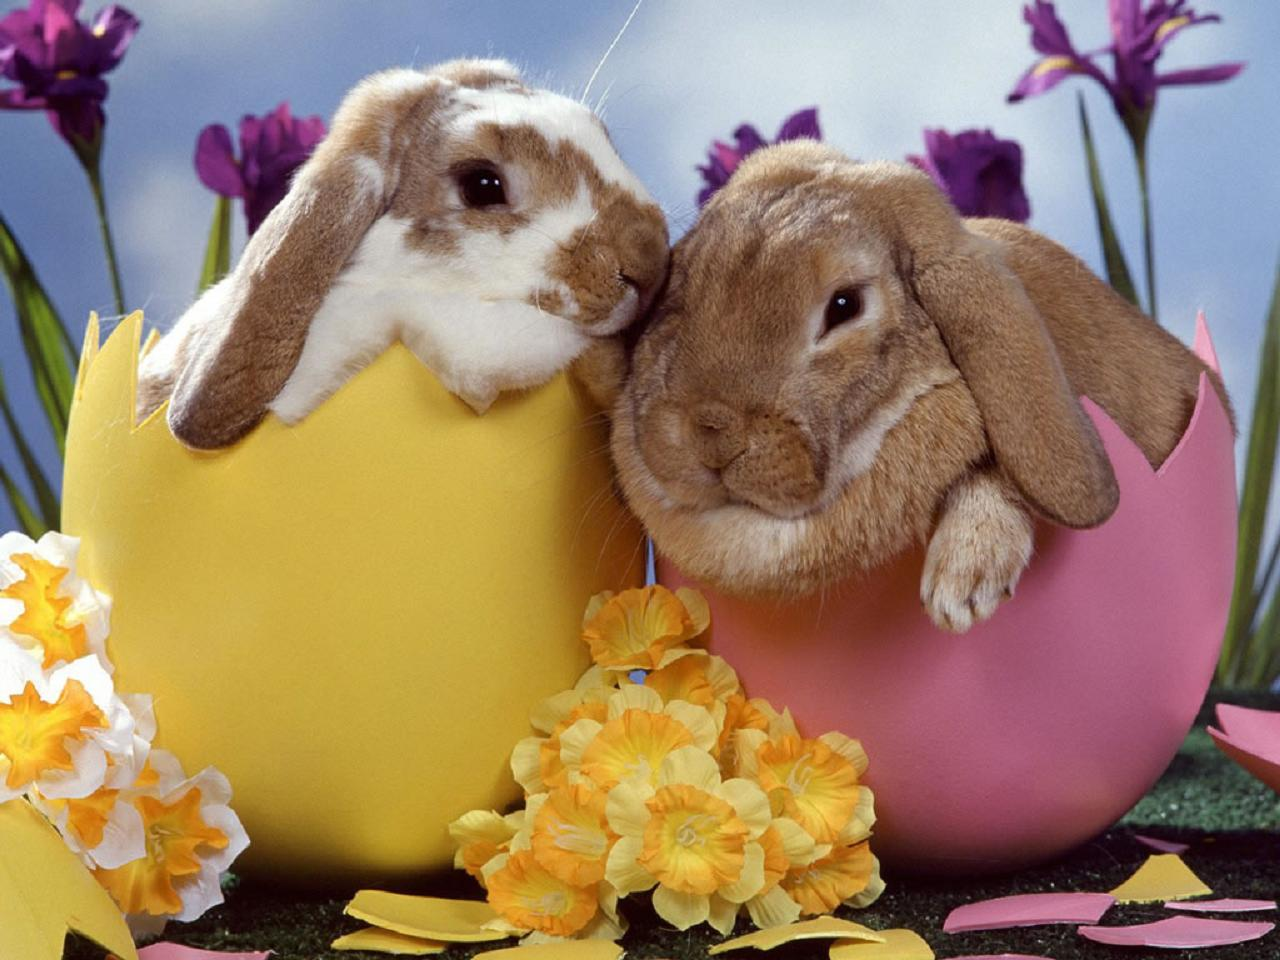 cute bunnies cute rabbits cute animals easter